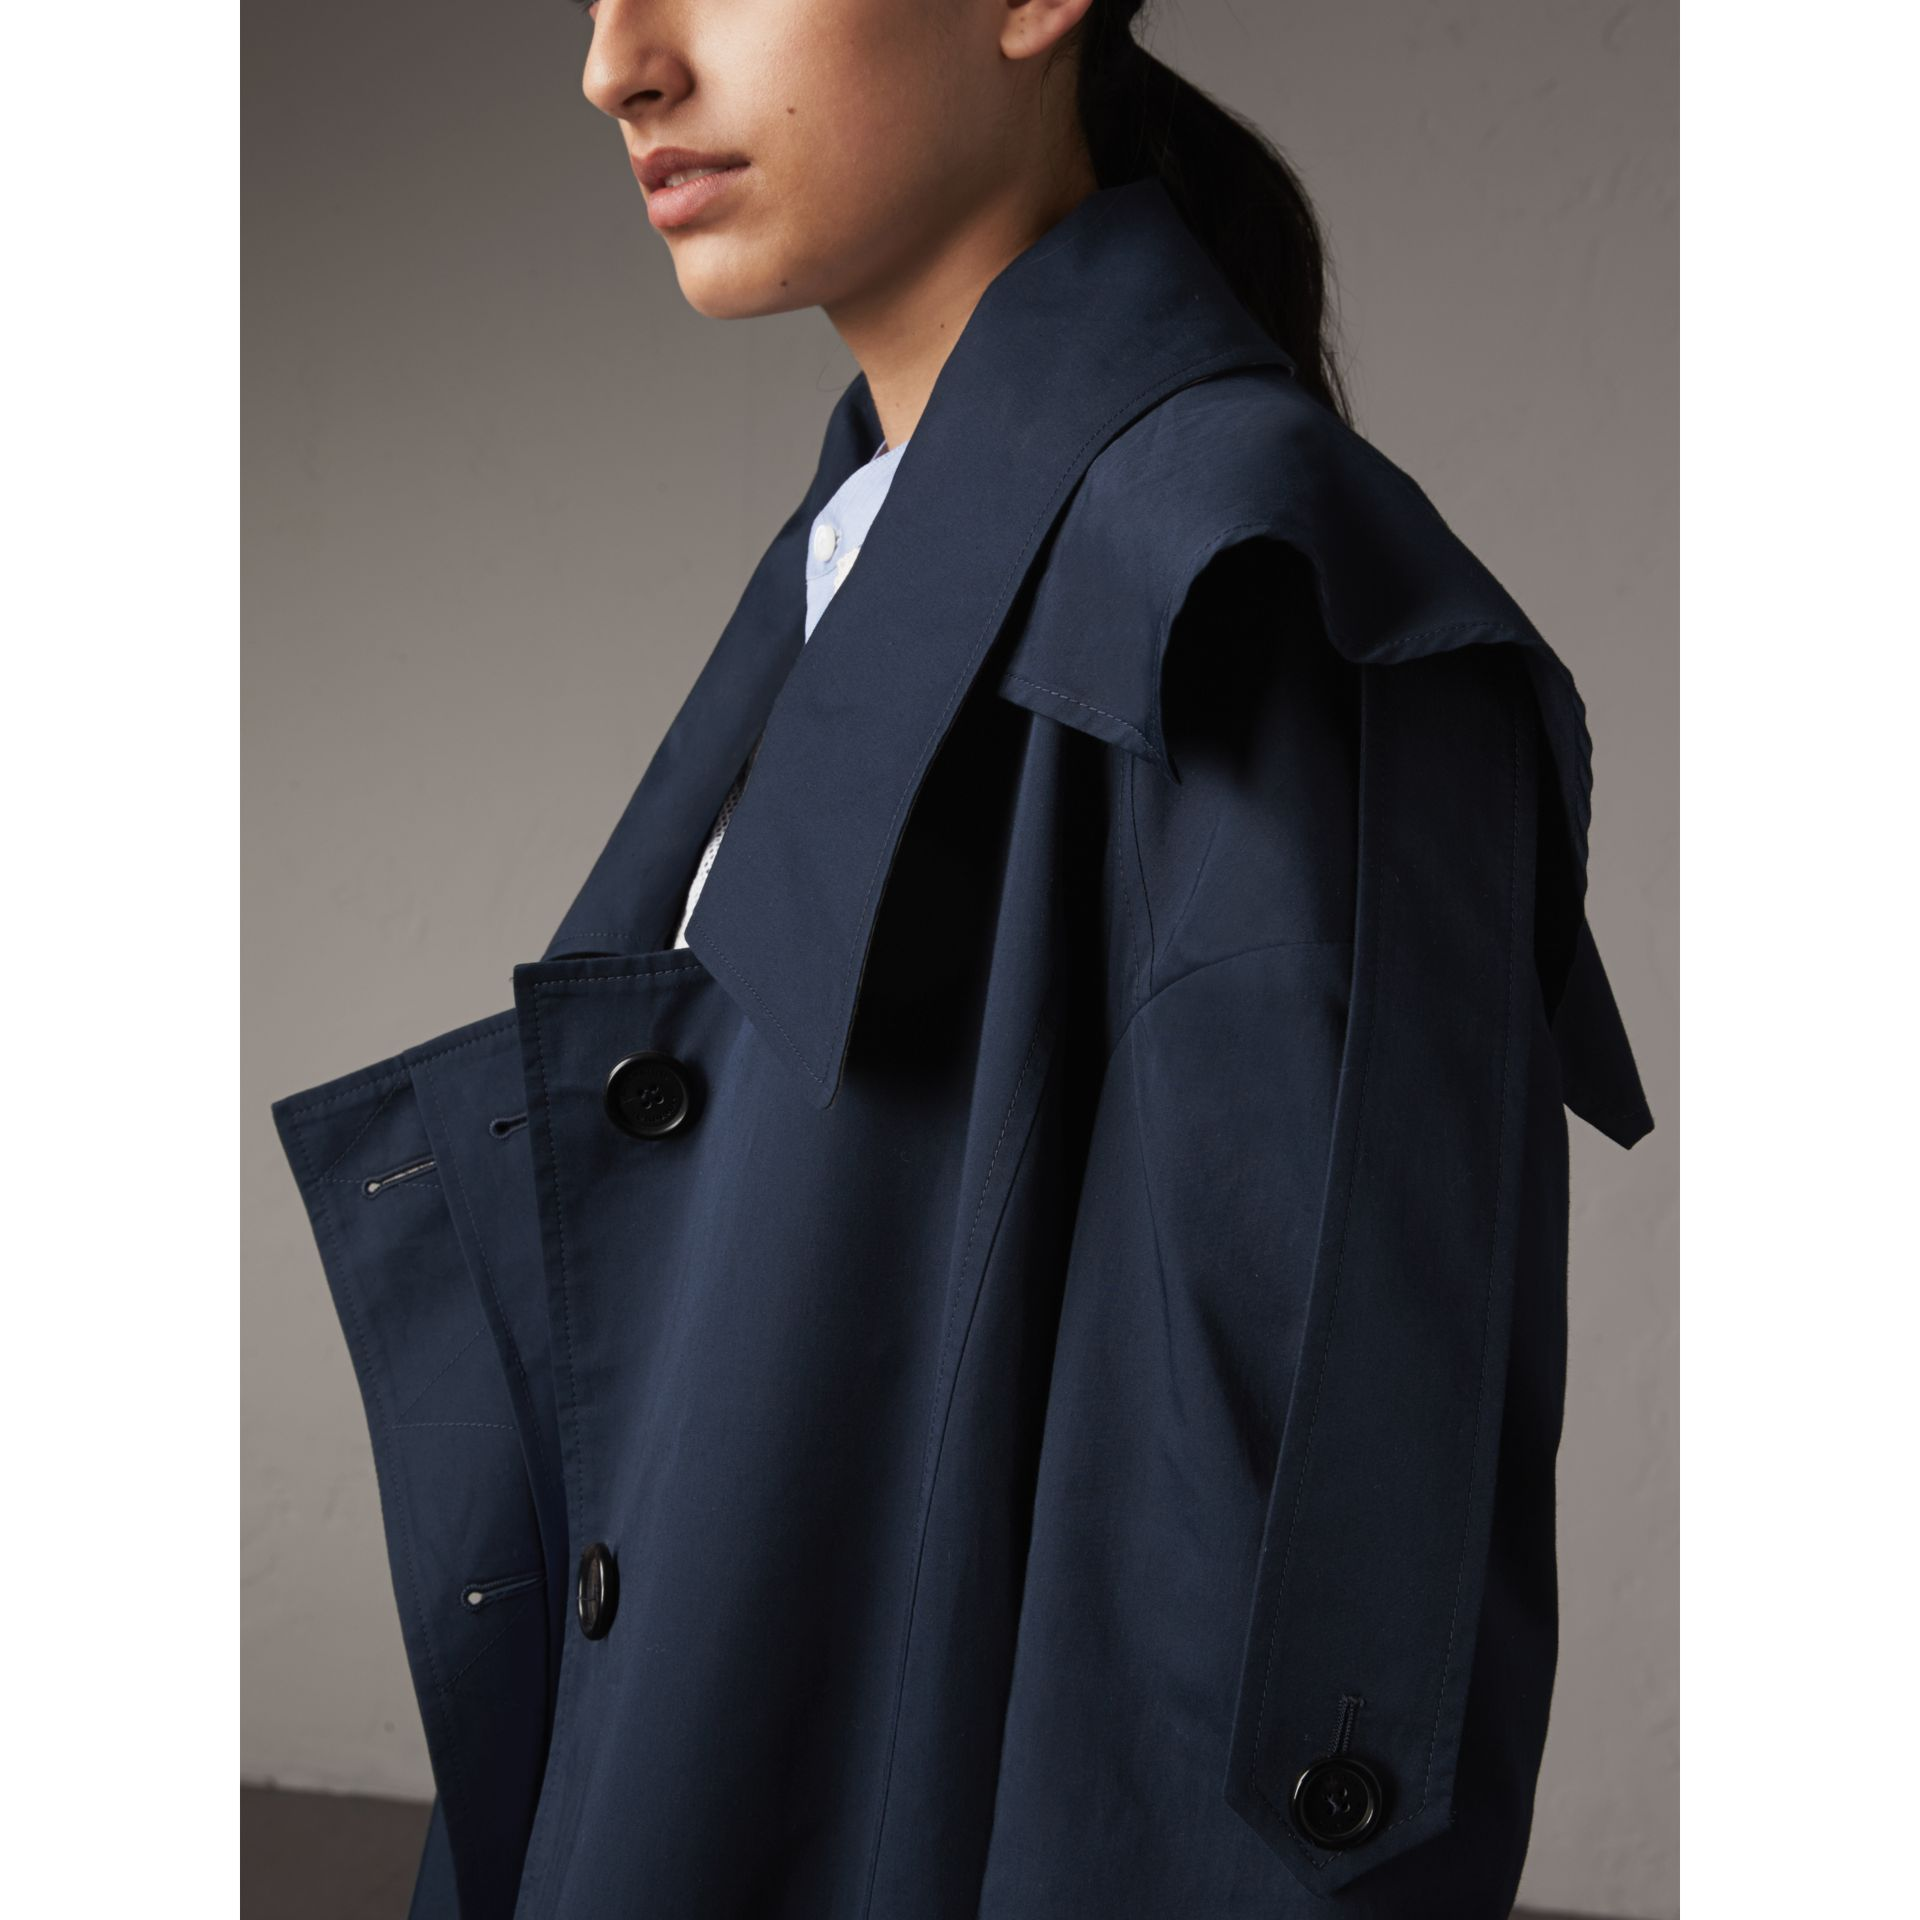 Cotton Asymmetric Trench Coat in Navy - Women | Burberry Australia - gallery image 2